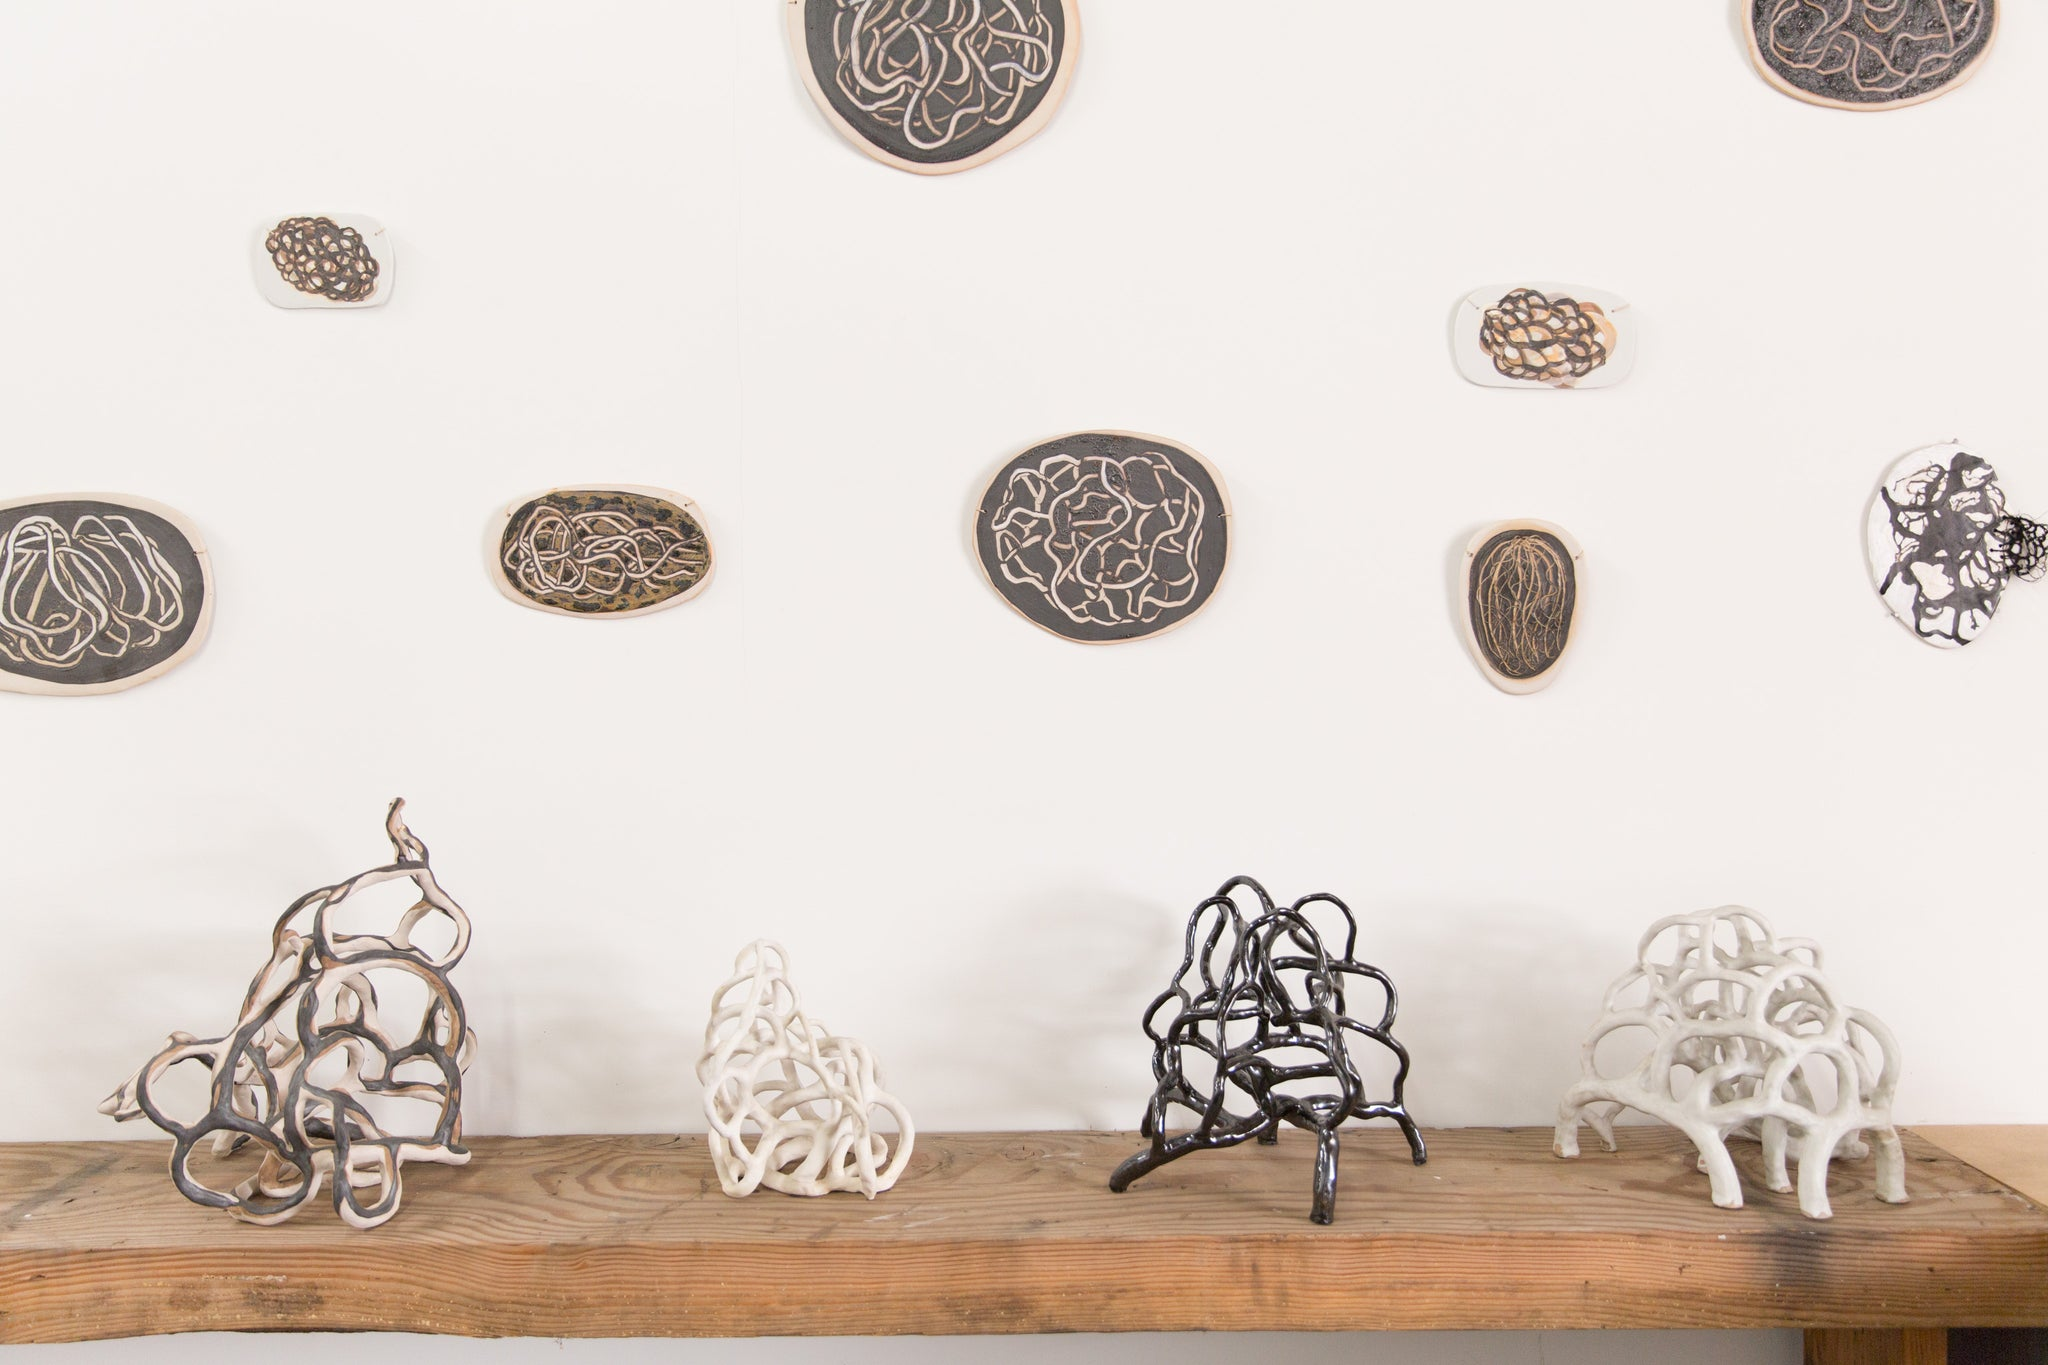 ceramic artworks by Laura Cooper hung on wall and on standing on table